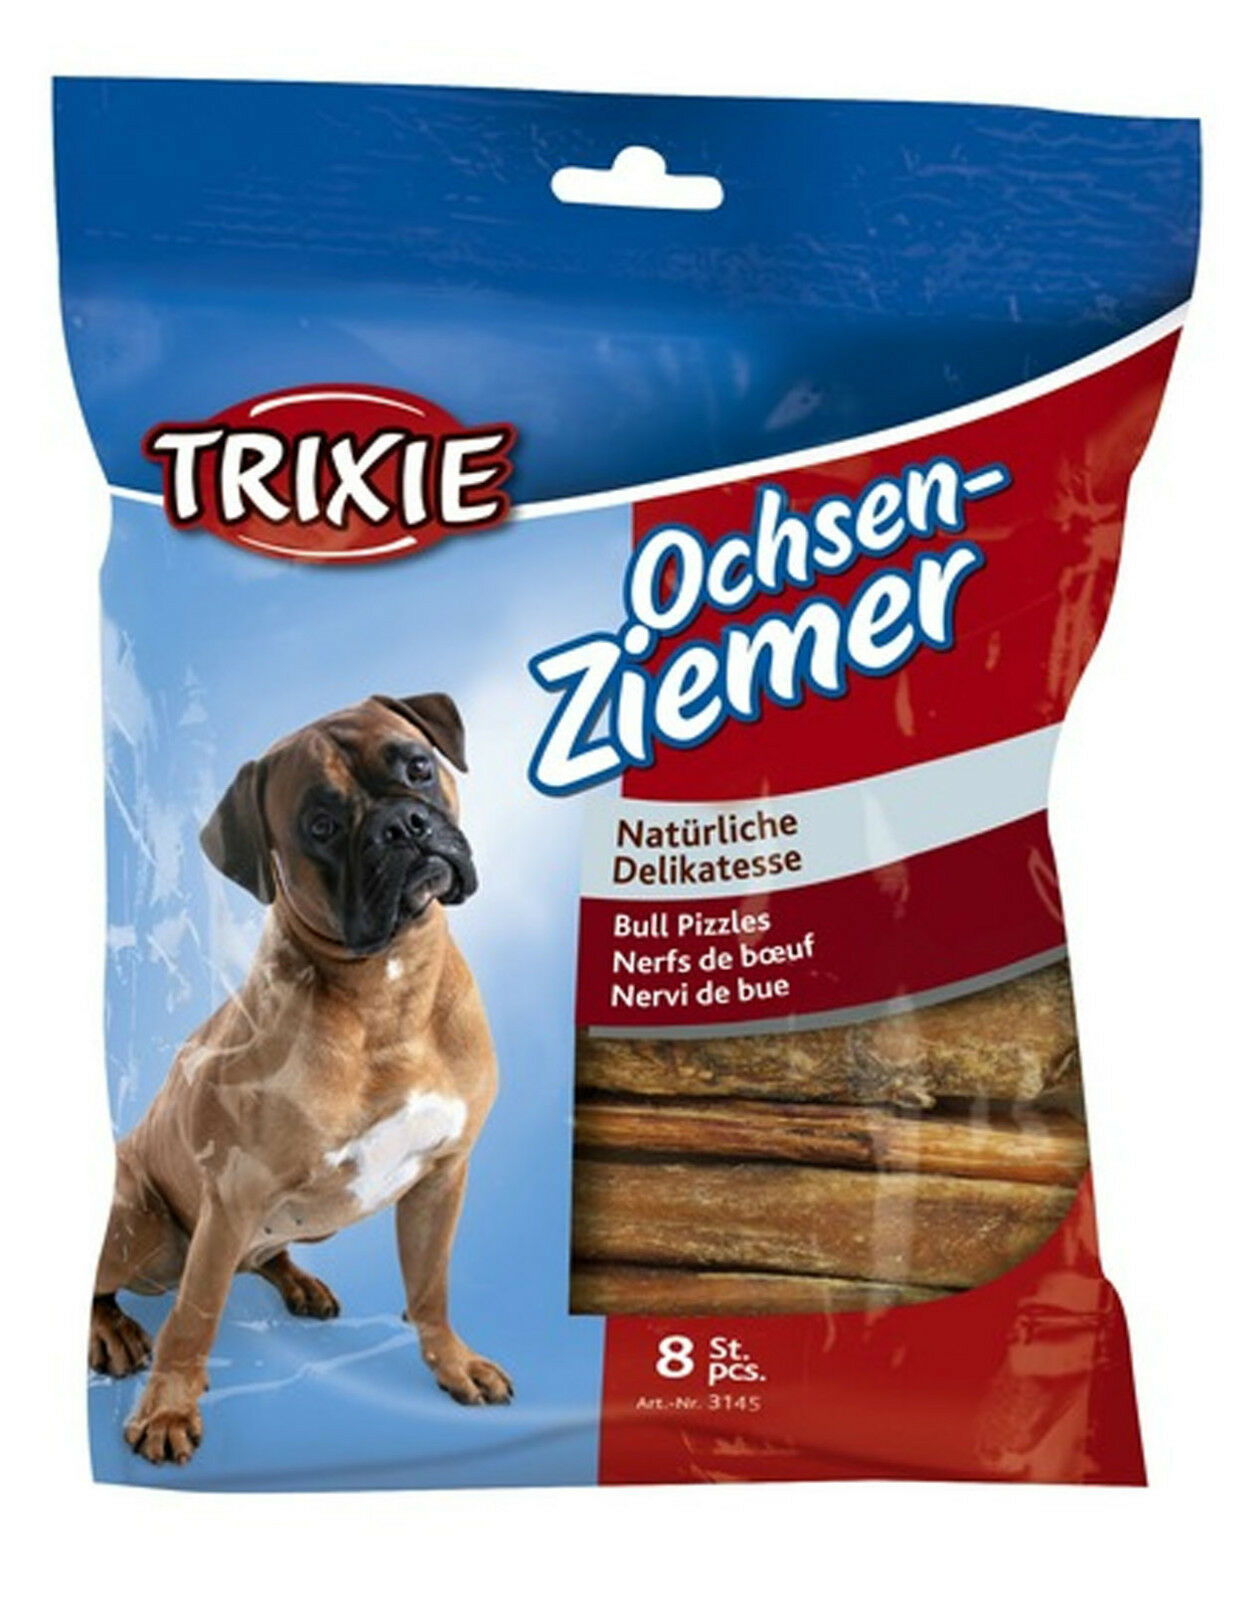 trixie bull pizzles bully sticks 12cm pack of 8 dog treats chews 100g mpn 3145 picclick uk. Black Bedroom Furniture Sets. Home Design Ideas